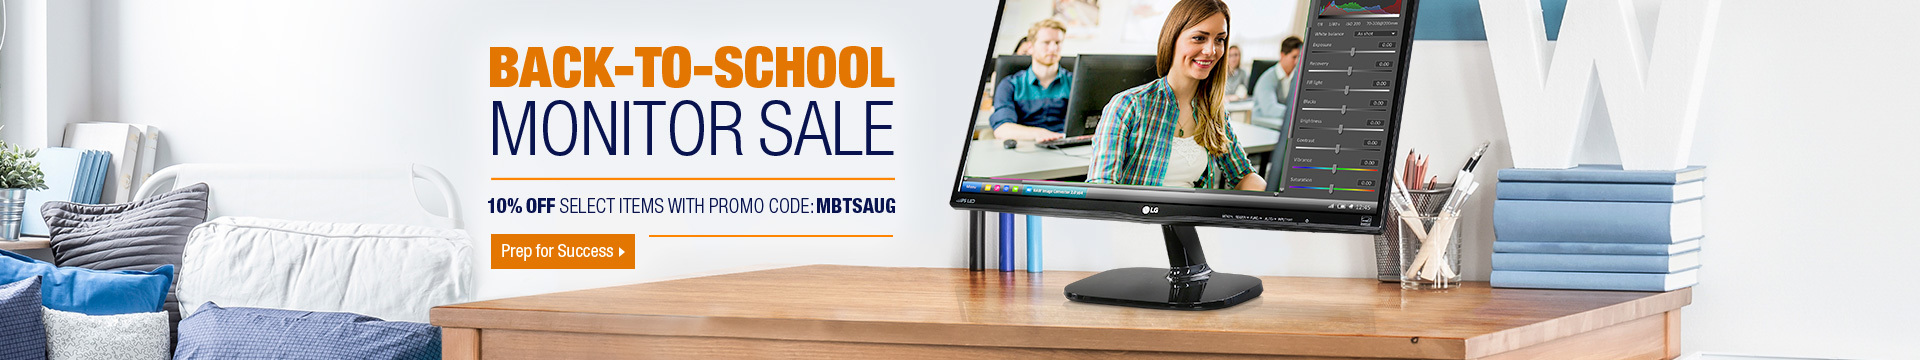 Back-to-School monitor sale